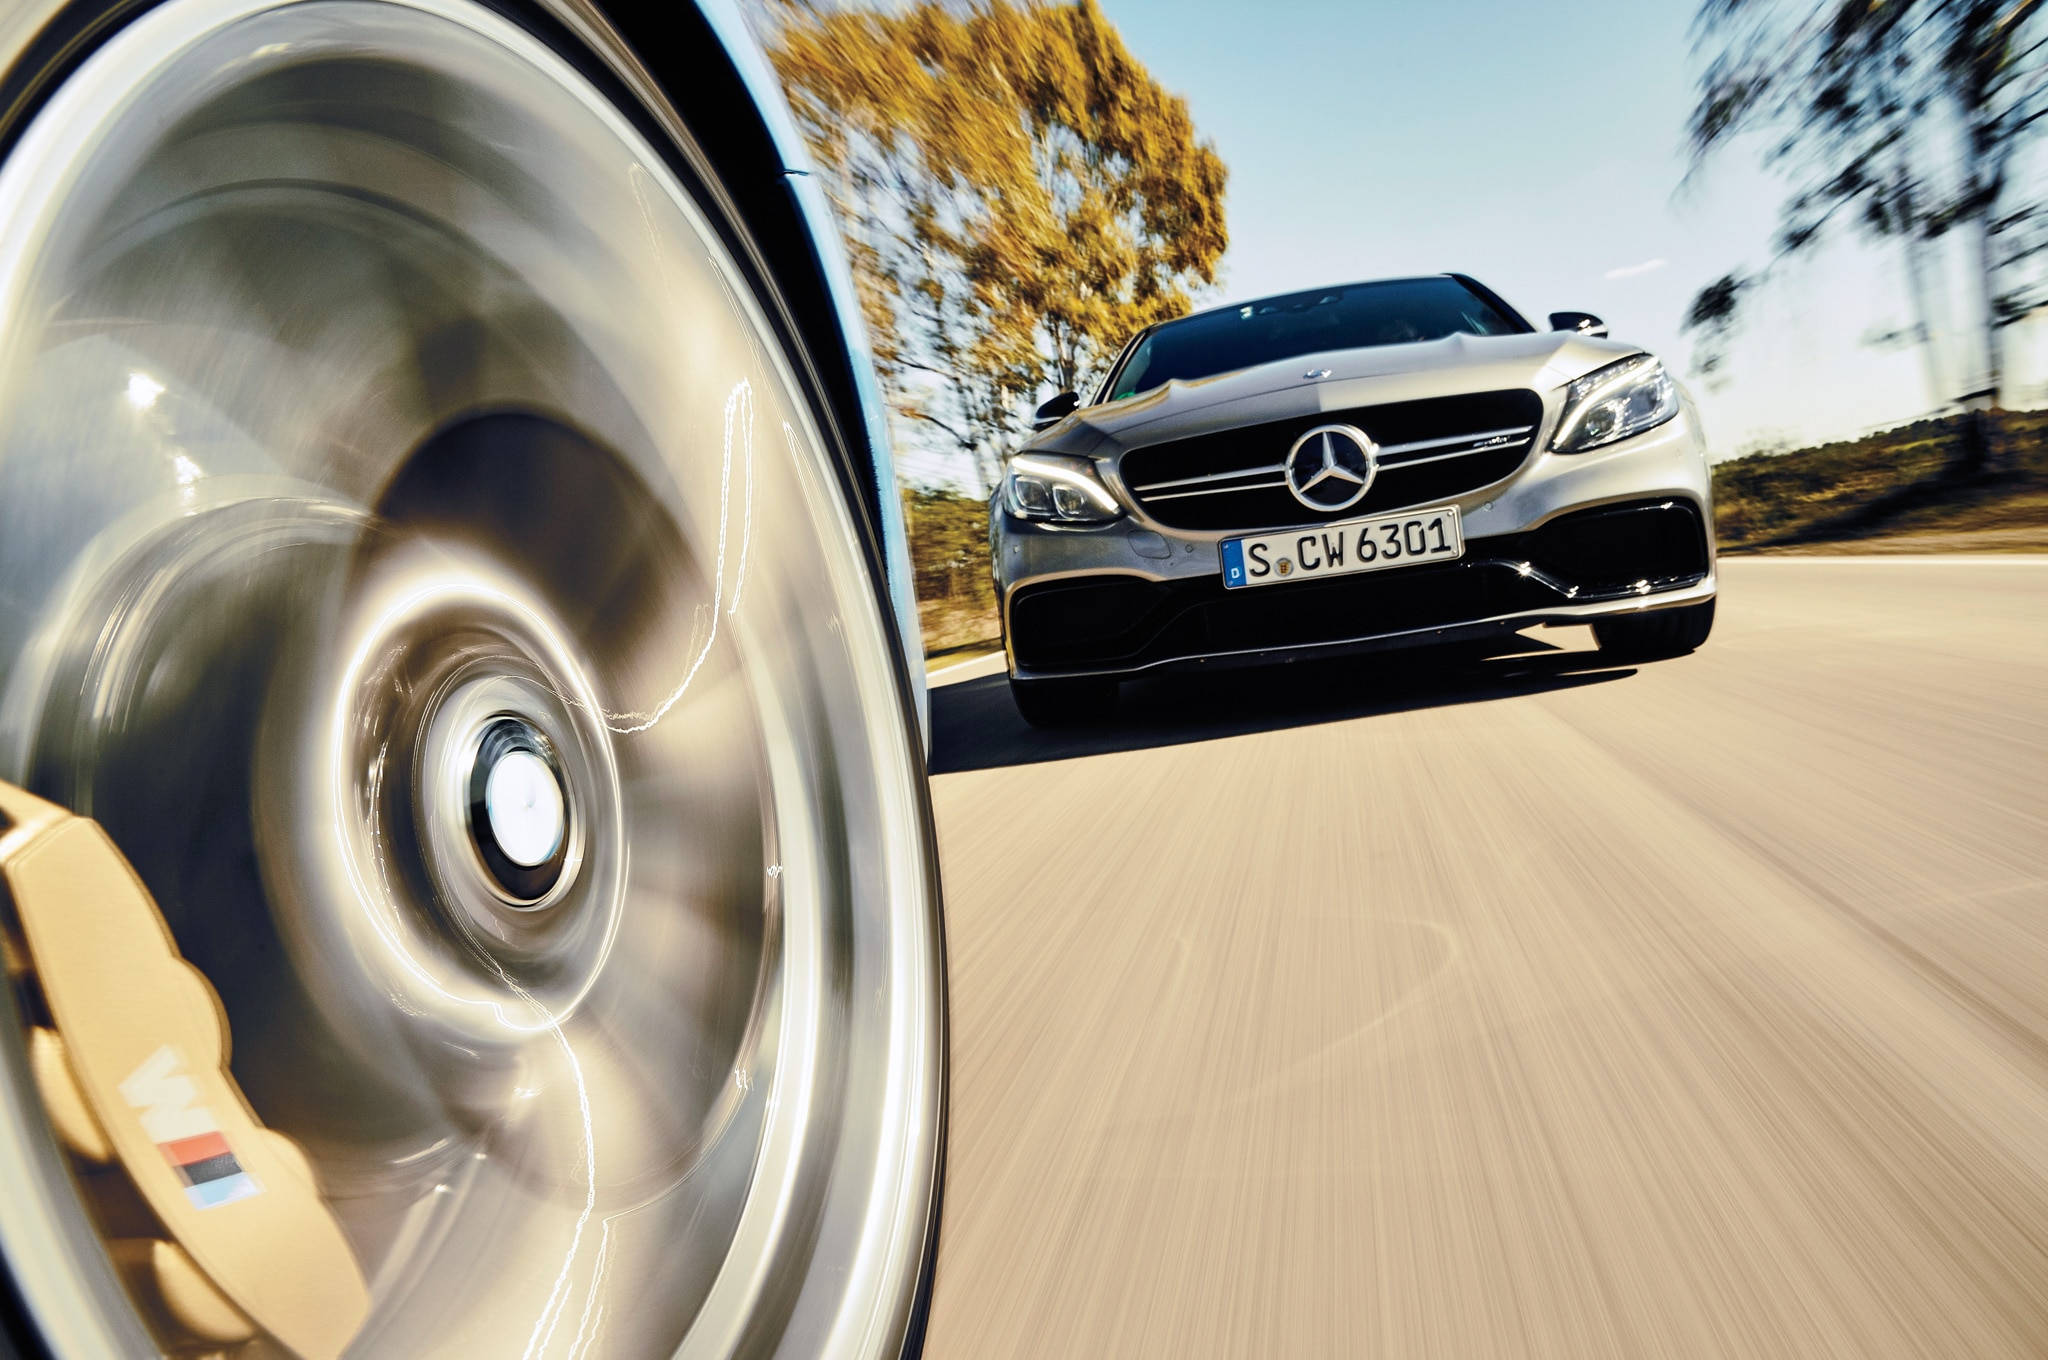 Revel in rivalry: Whichever car you prefer, appreciate the fact that BMW and AMG continue to push the envelope.